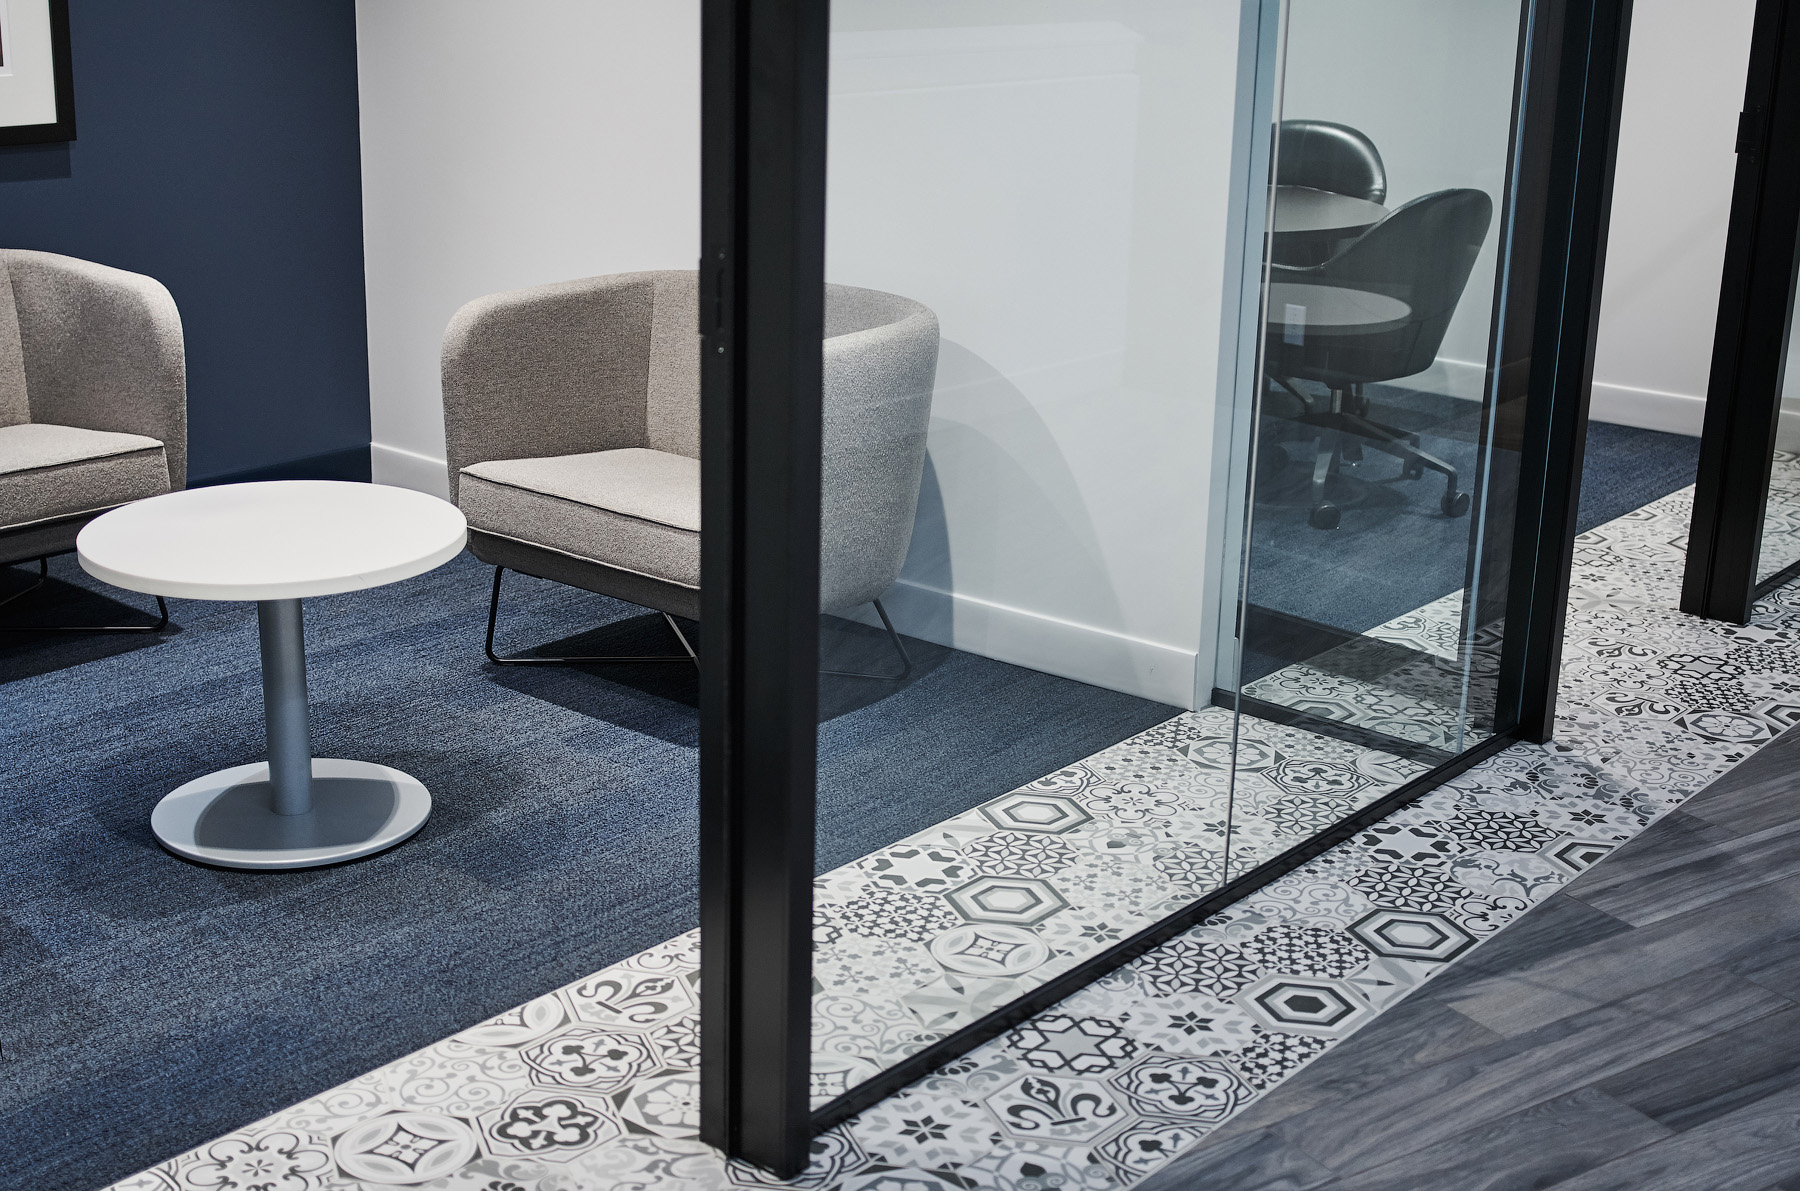 Optimus Toronto meeting room detail with glass wall, navy blue carpet, patterned floor tile, and grey upholstery